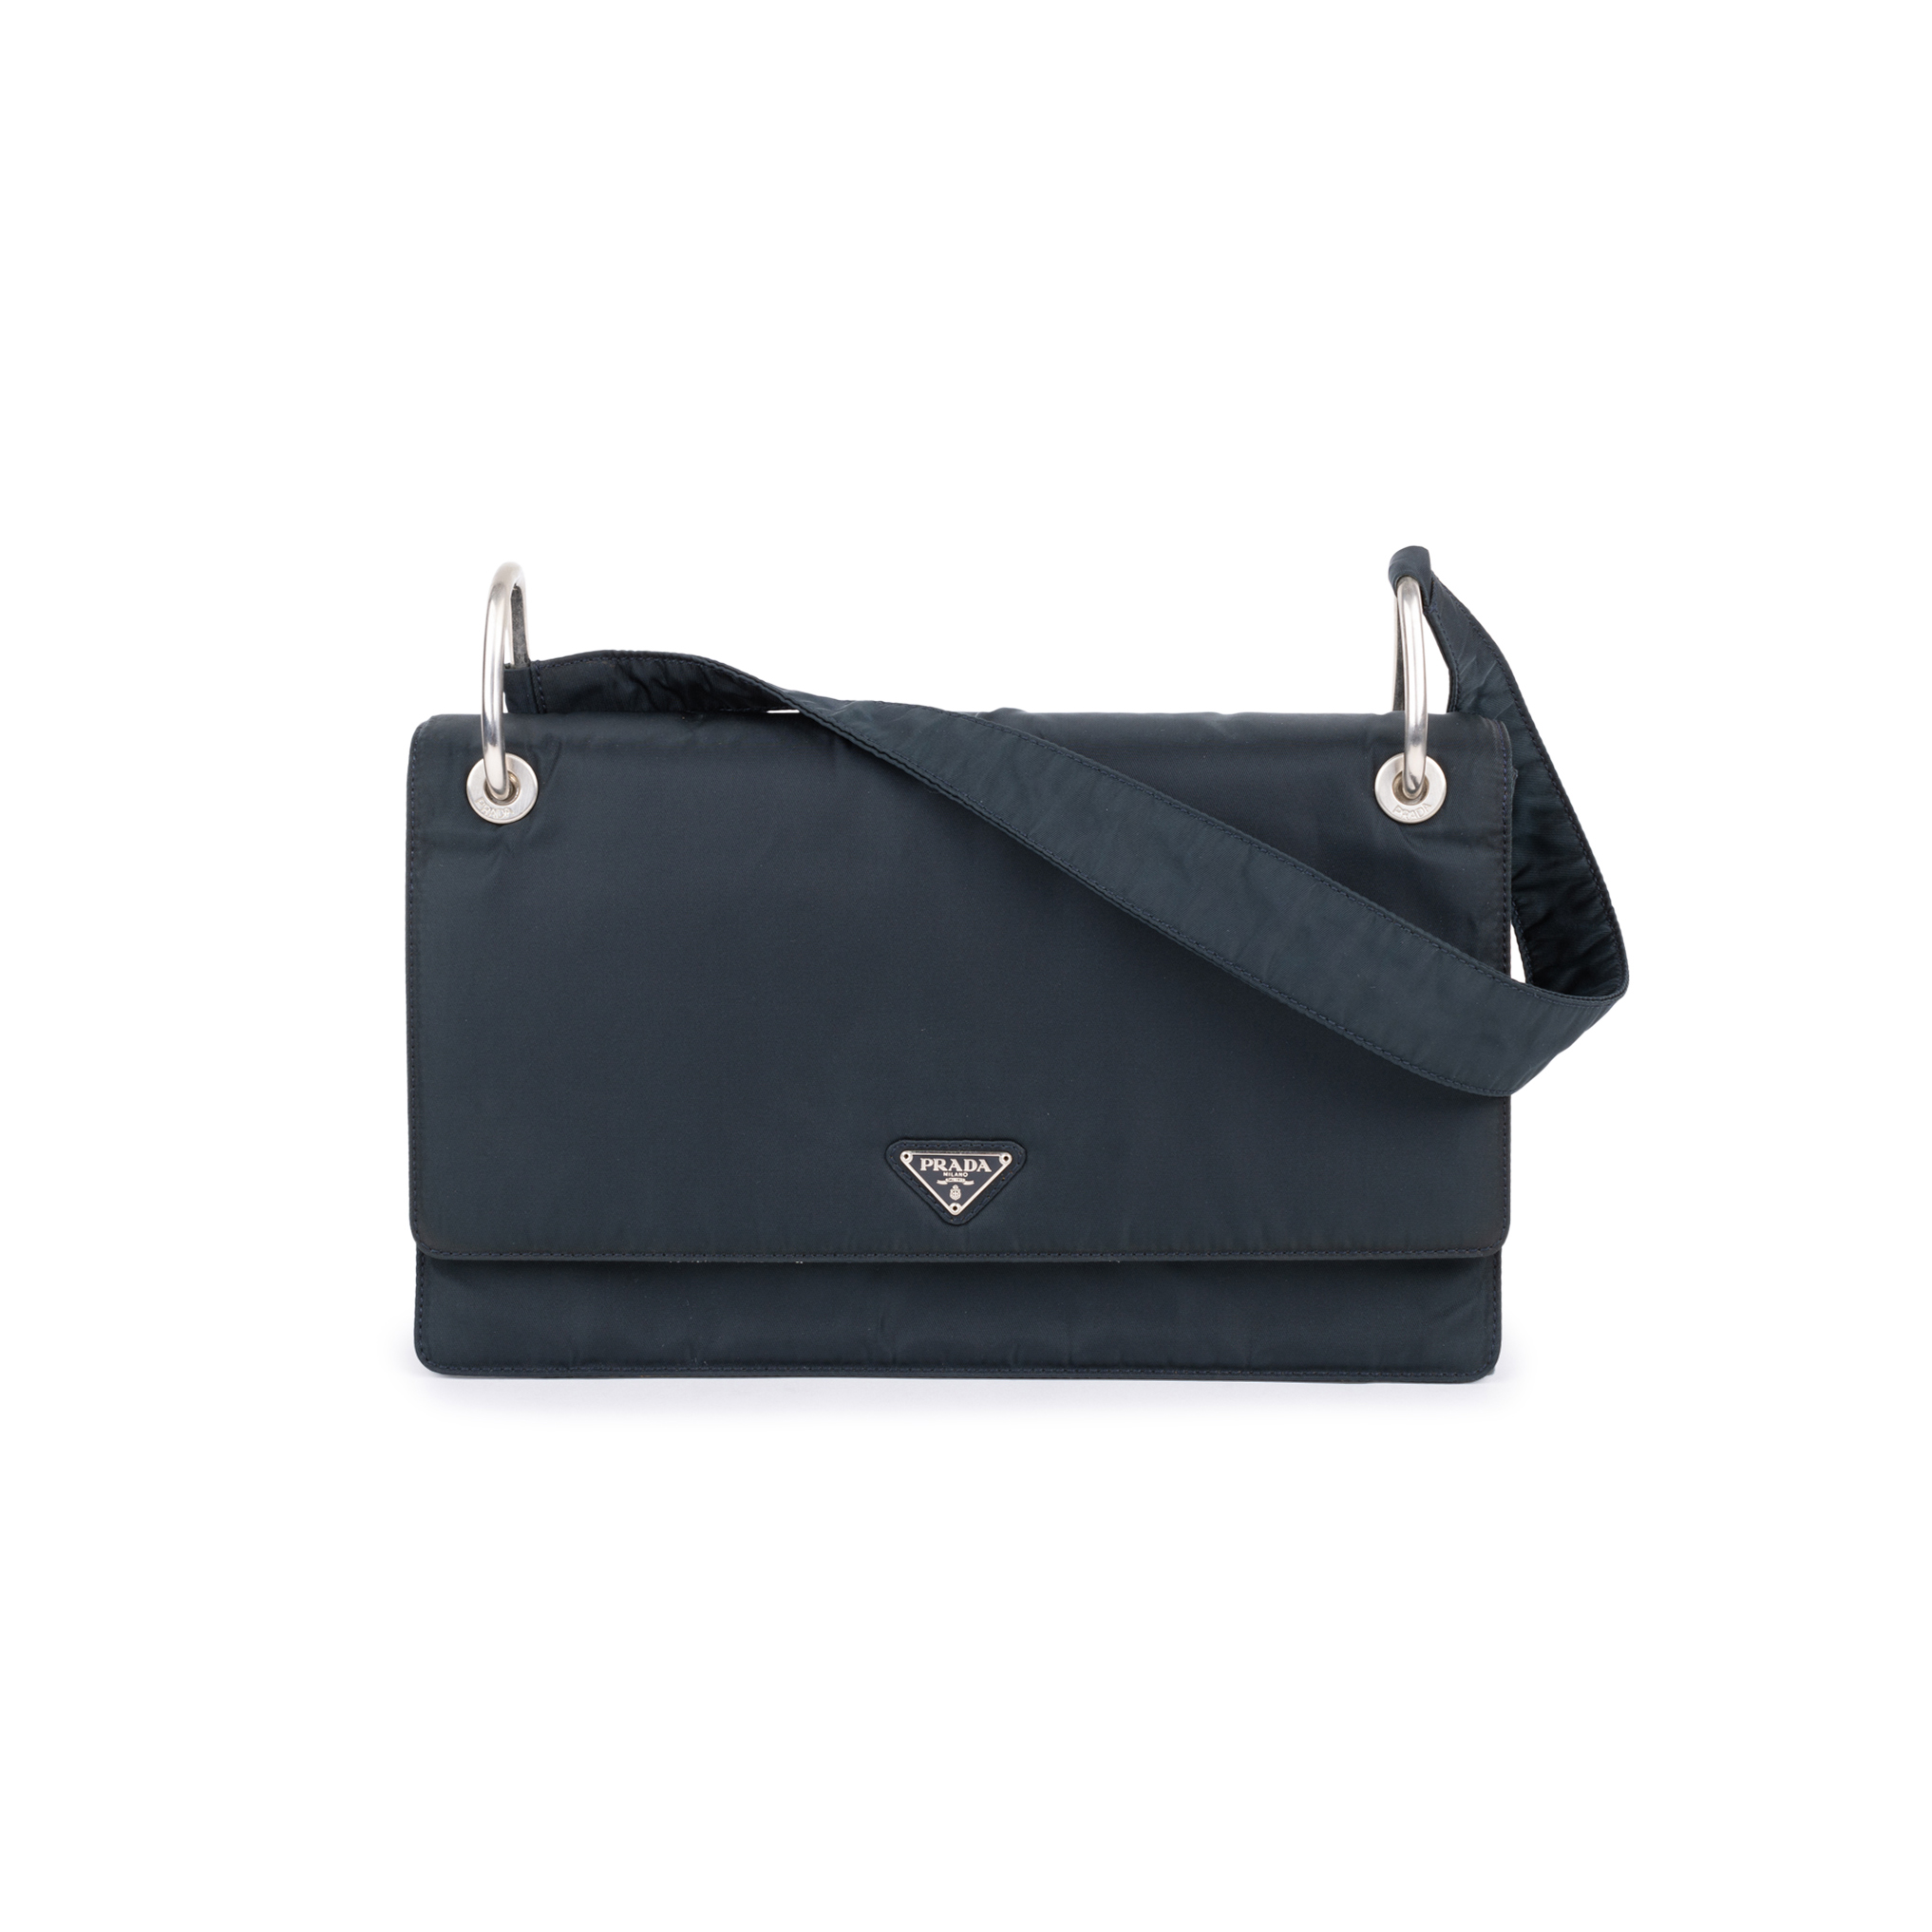 3d42b27a44 Authentic Second Hand Prada Borsa Tessuto Shoulder Bag (PSS-594-00018)